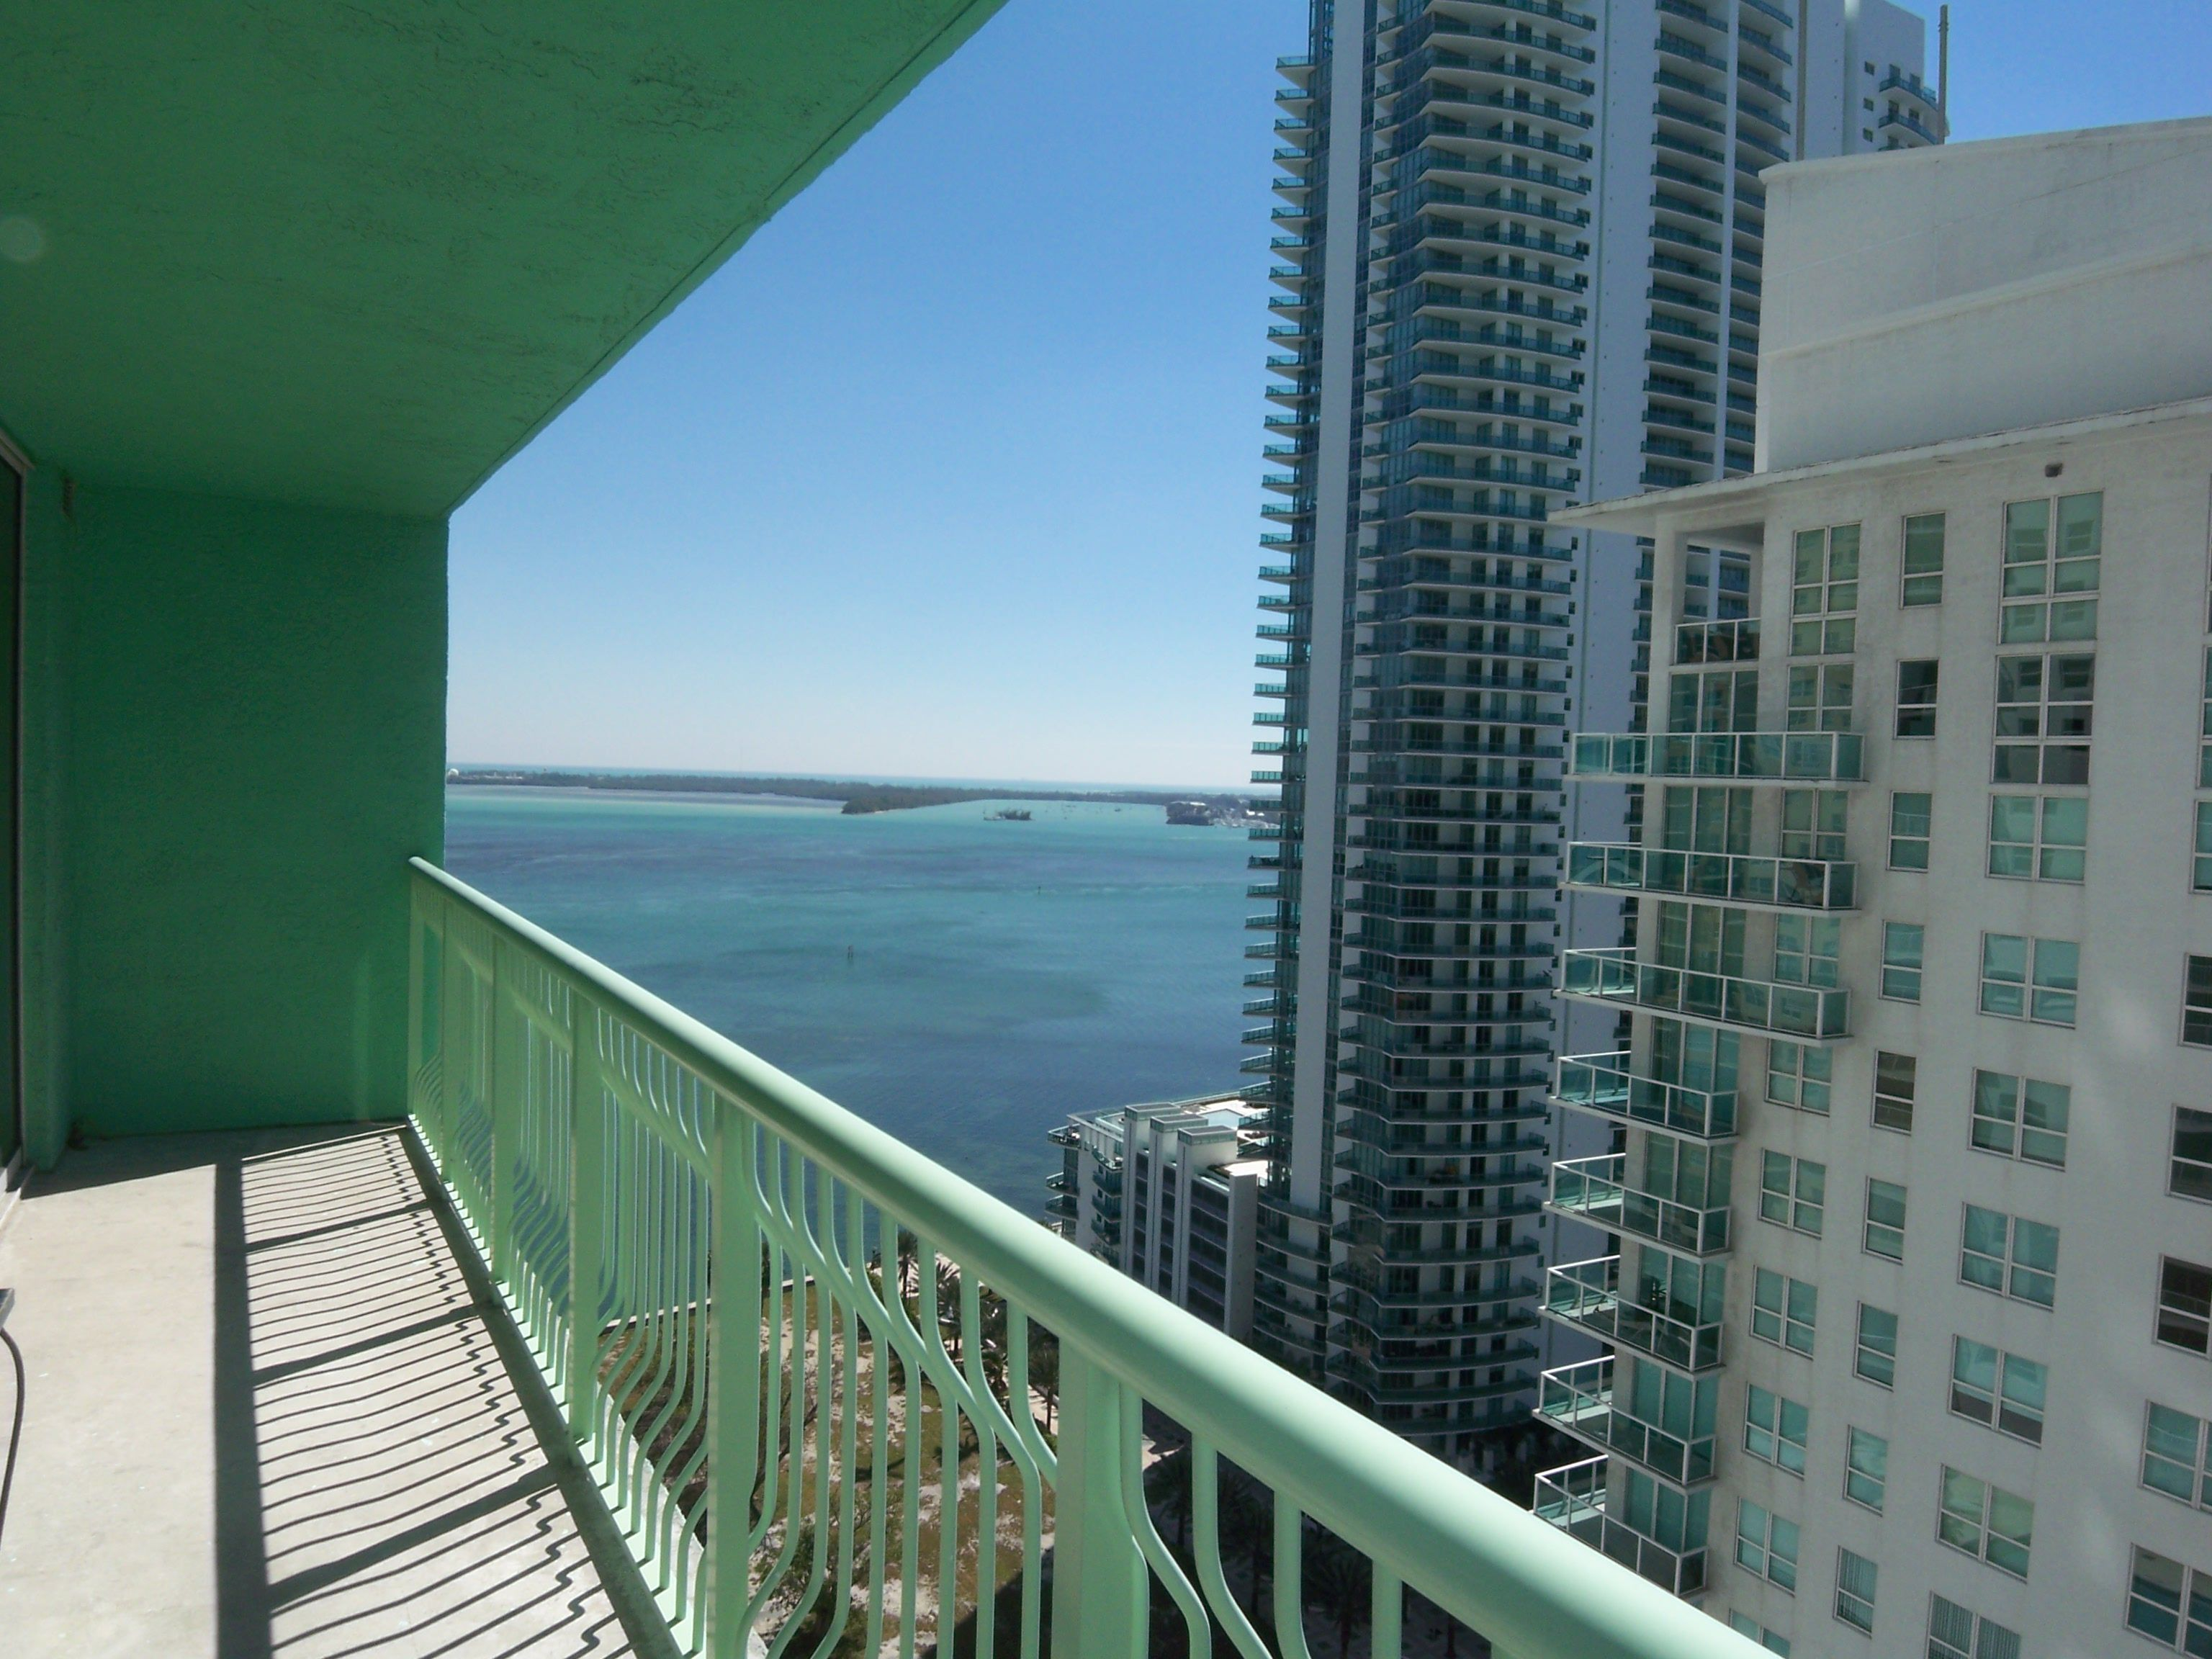 Brickell bay club view miami beach real estate play and